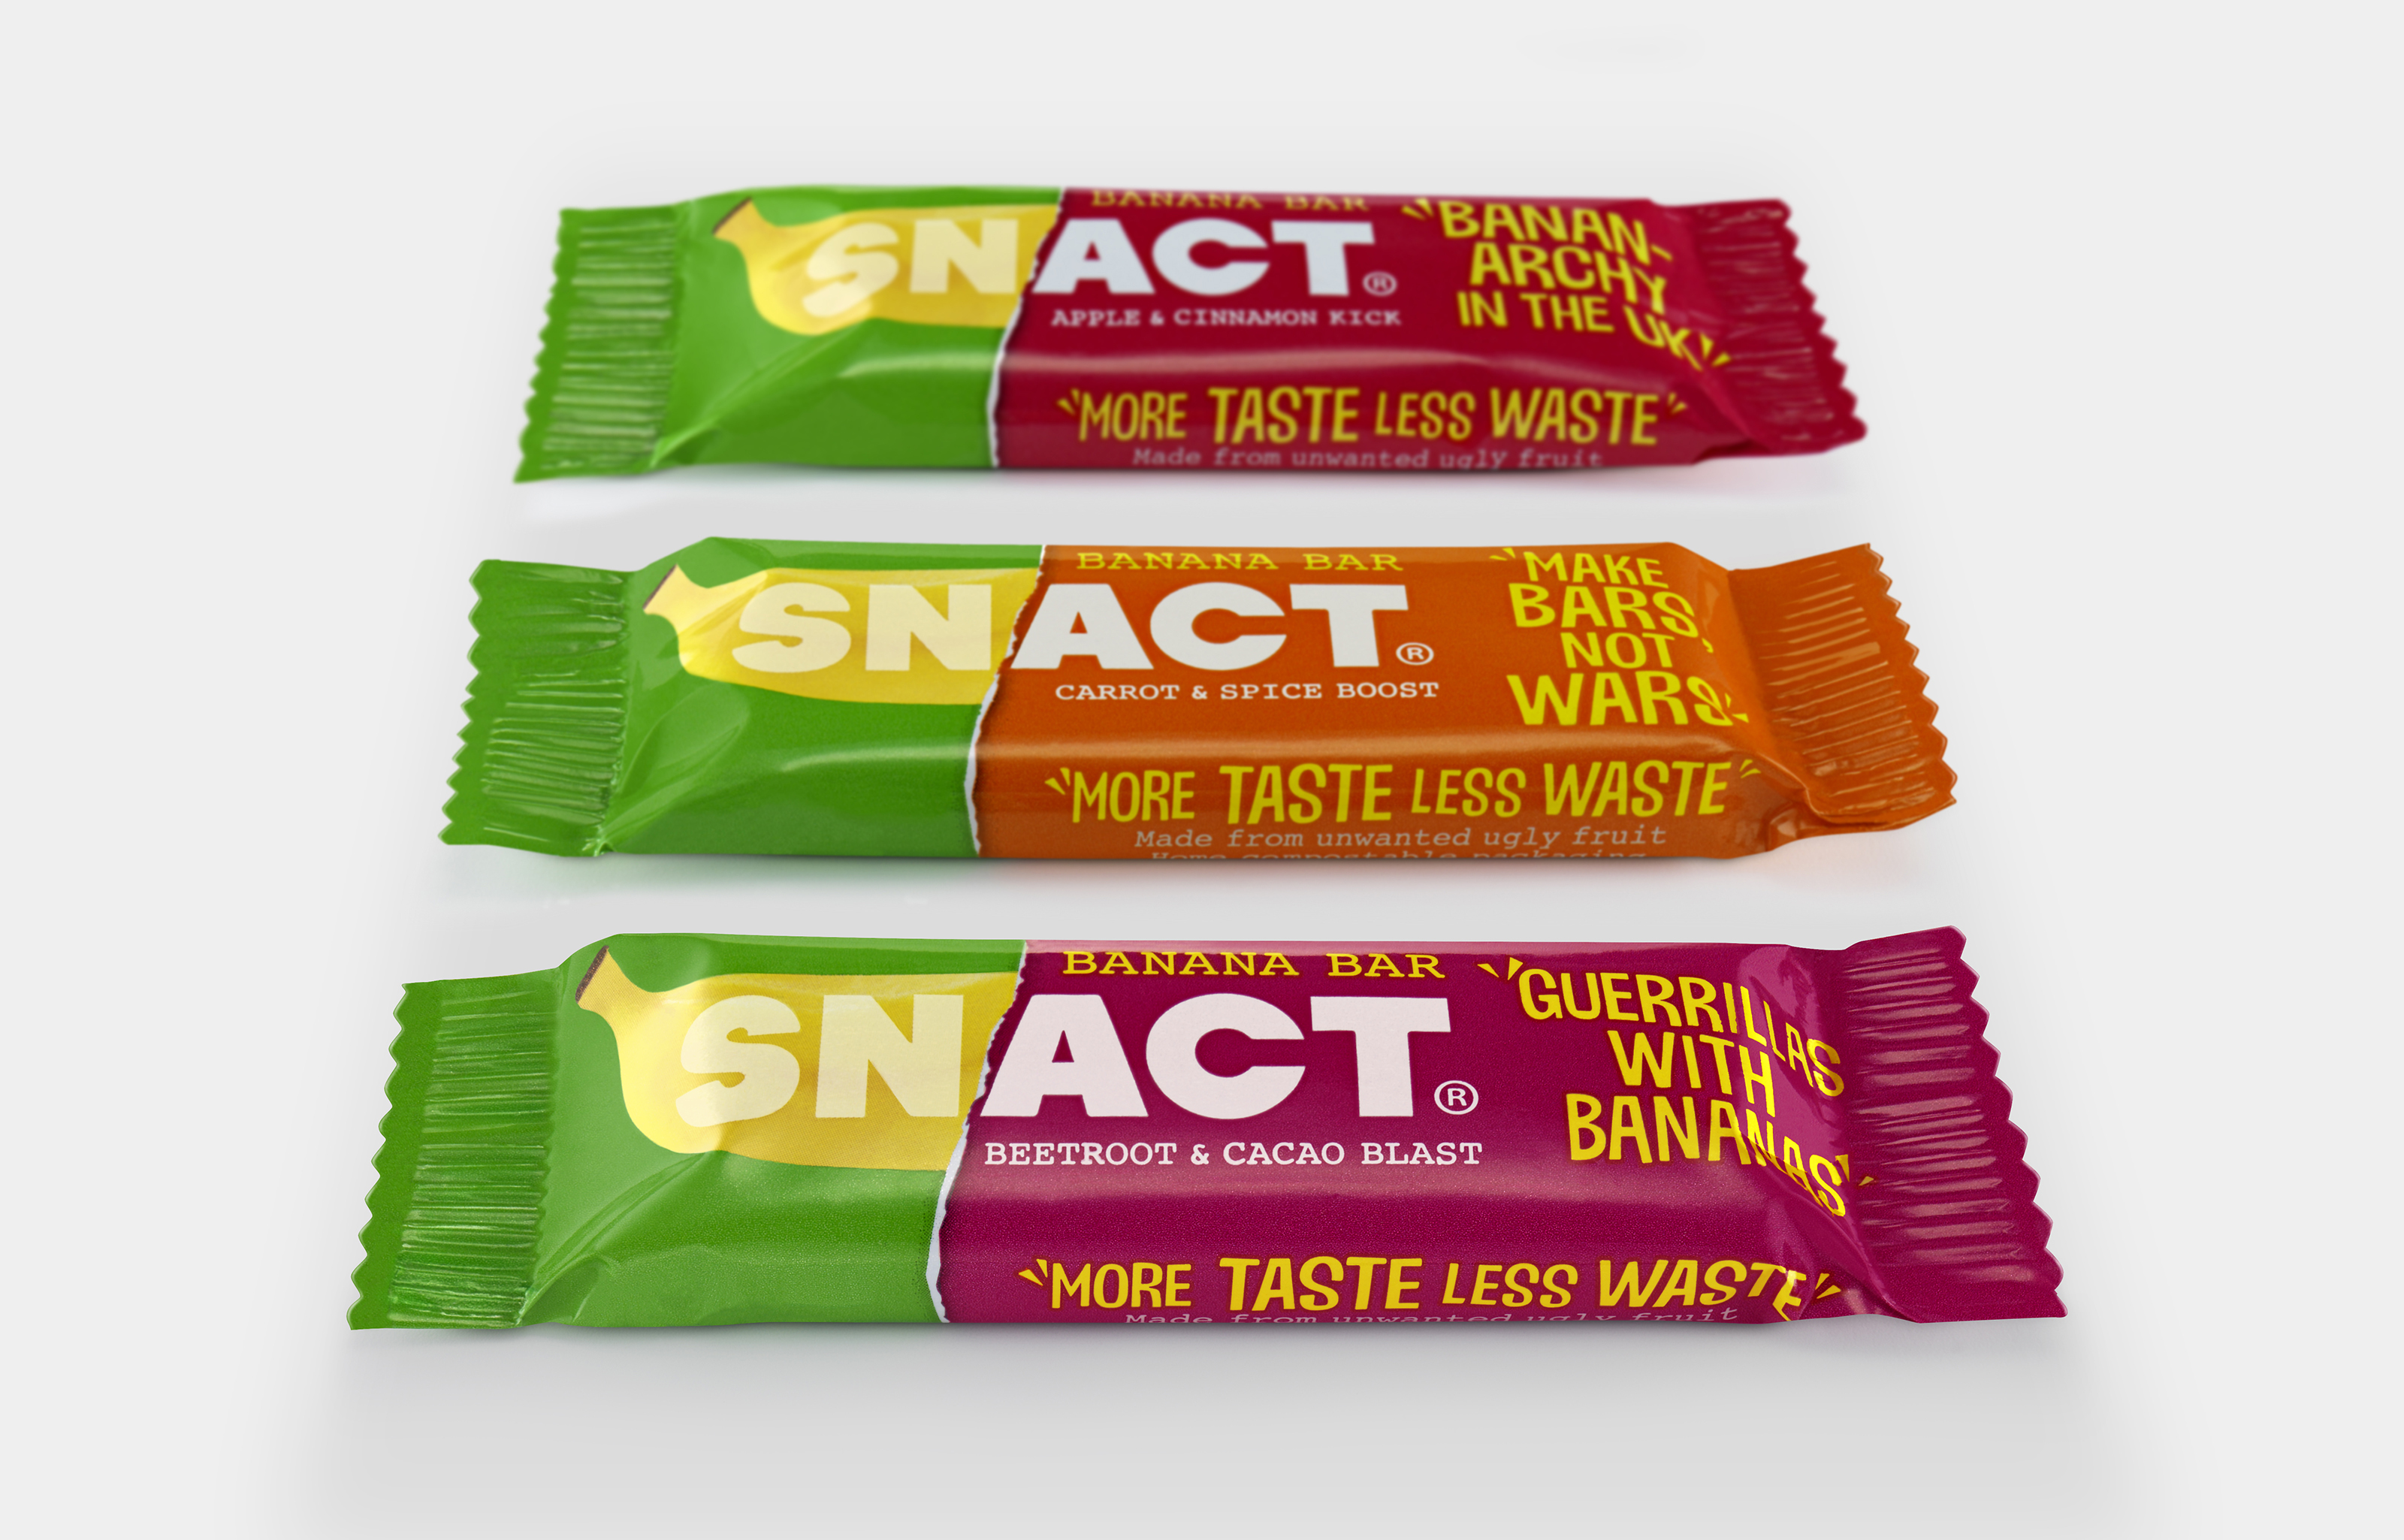 Snact Banana Bars